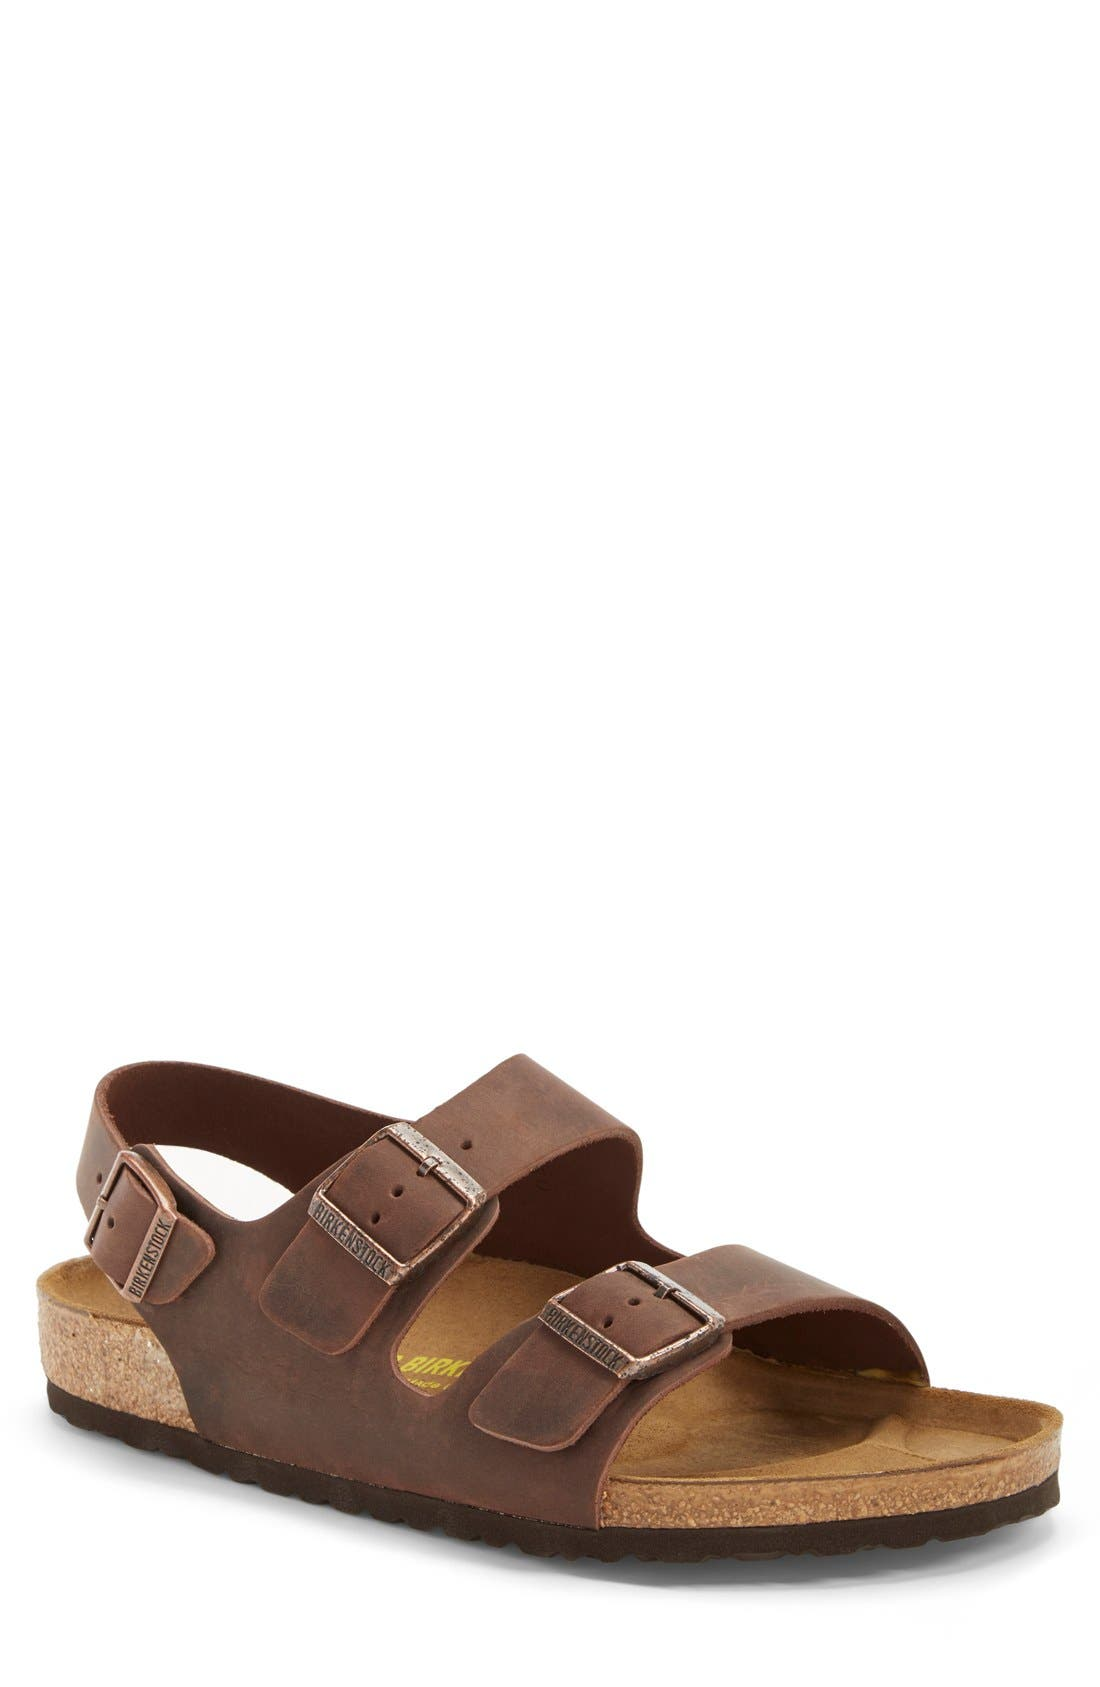 'Milano' Sandal,                         Main,                         color, Habana Oiled